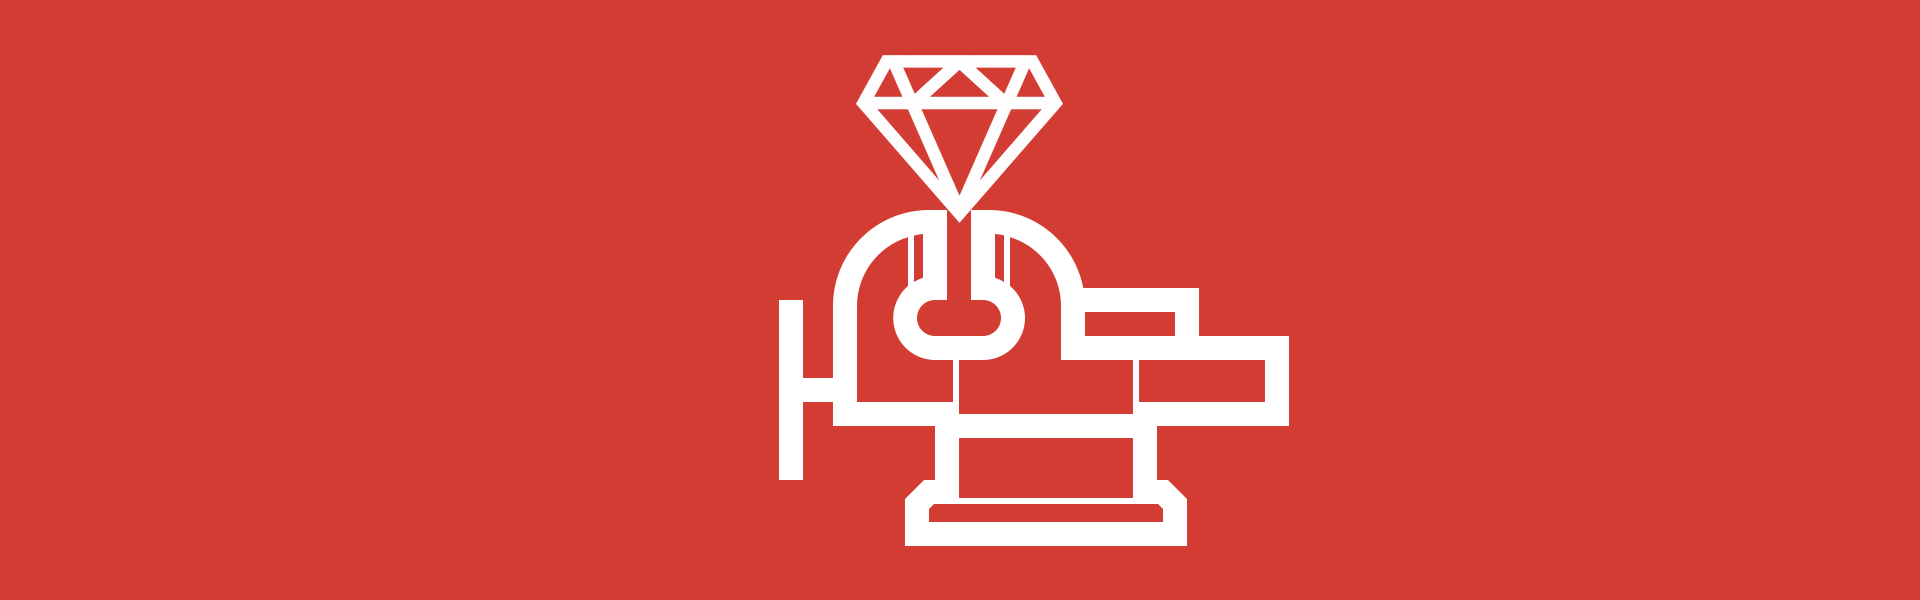 An icon of a vice squeezing a ruby gem